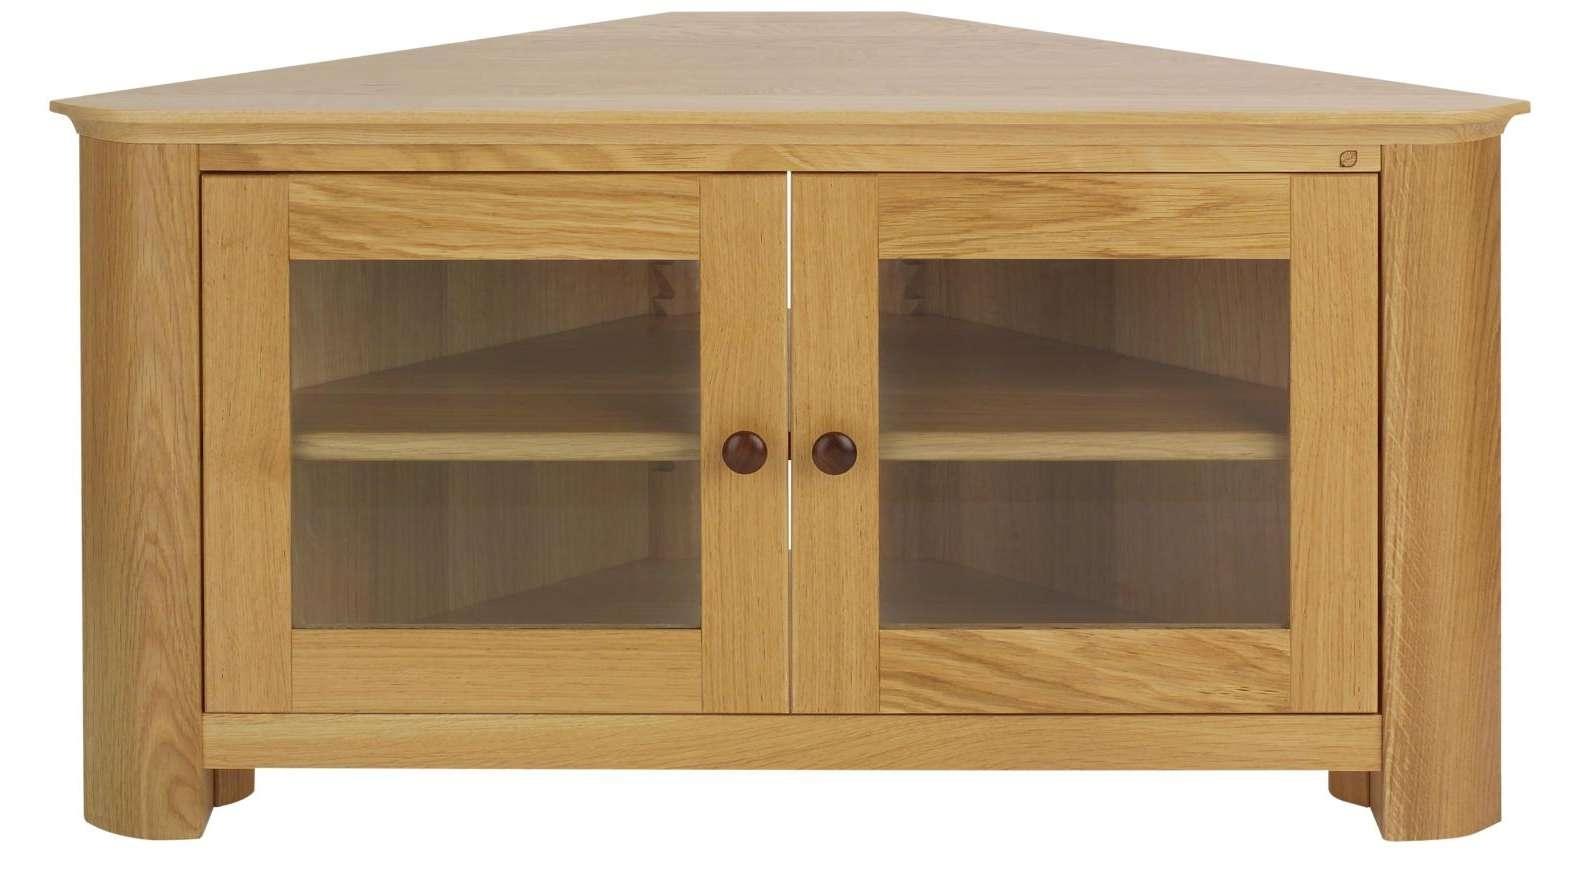 Astounding Solid Wood Corner Tv Stands Flat Screens Tags : Wooden Intended For Oak Effect Corner Tv Stands (View 1 of 15)